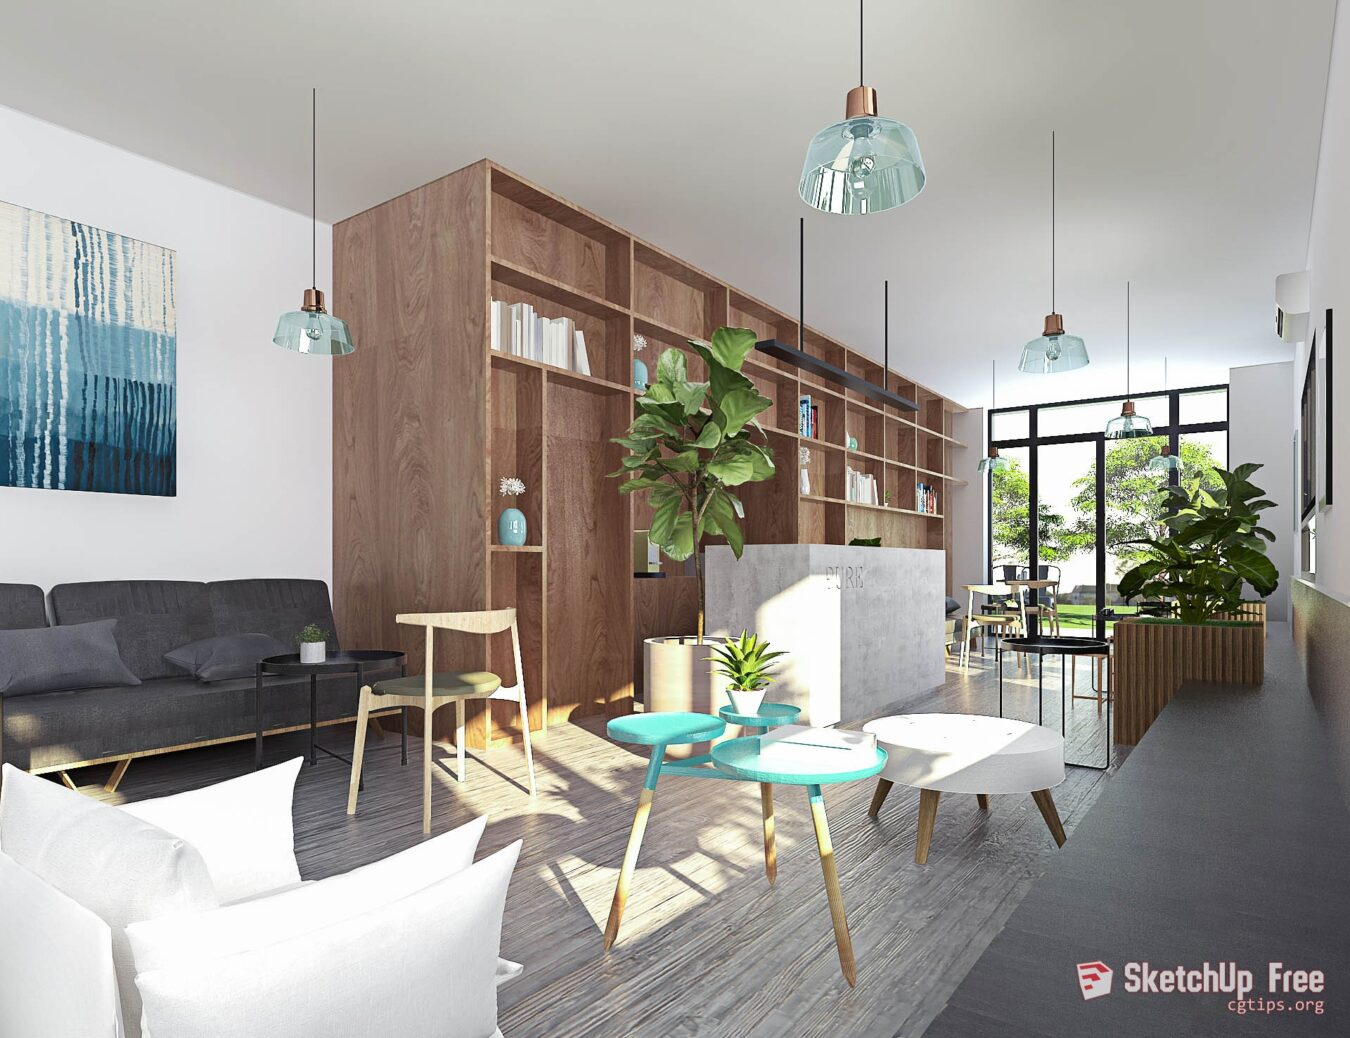 1176 Interior Cafe Showroom Scene Sketchup Model By Vu Phi Free Download